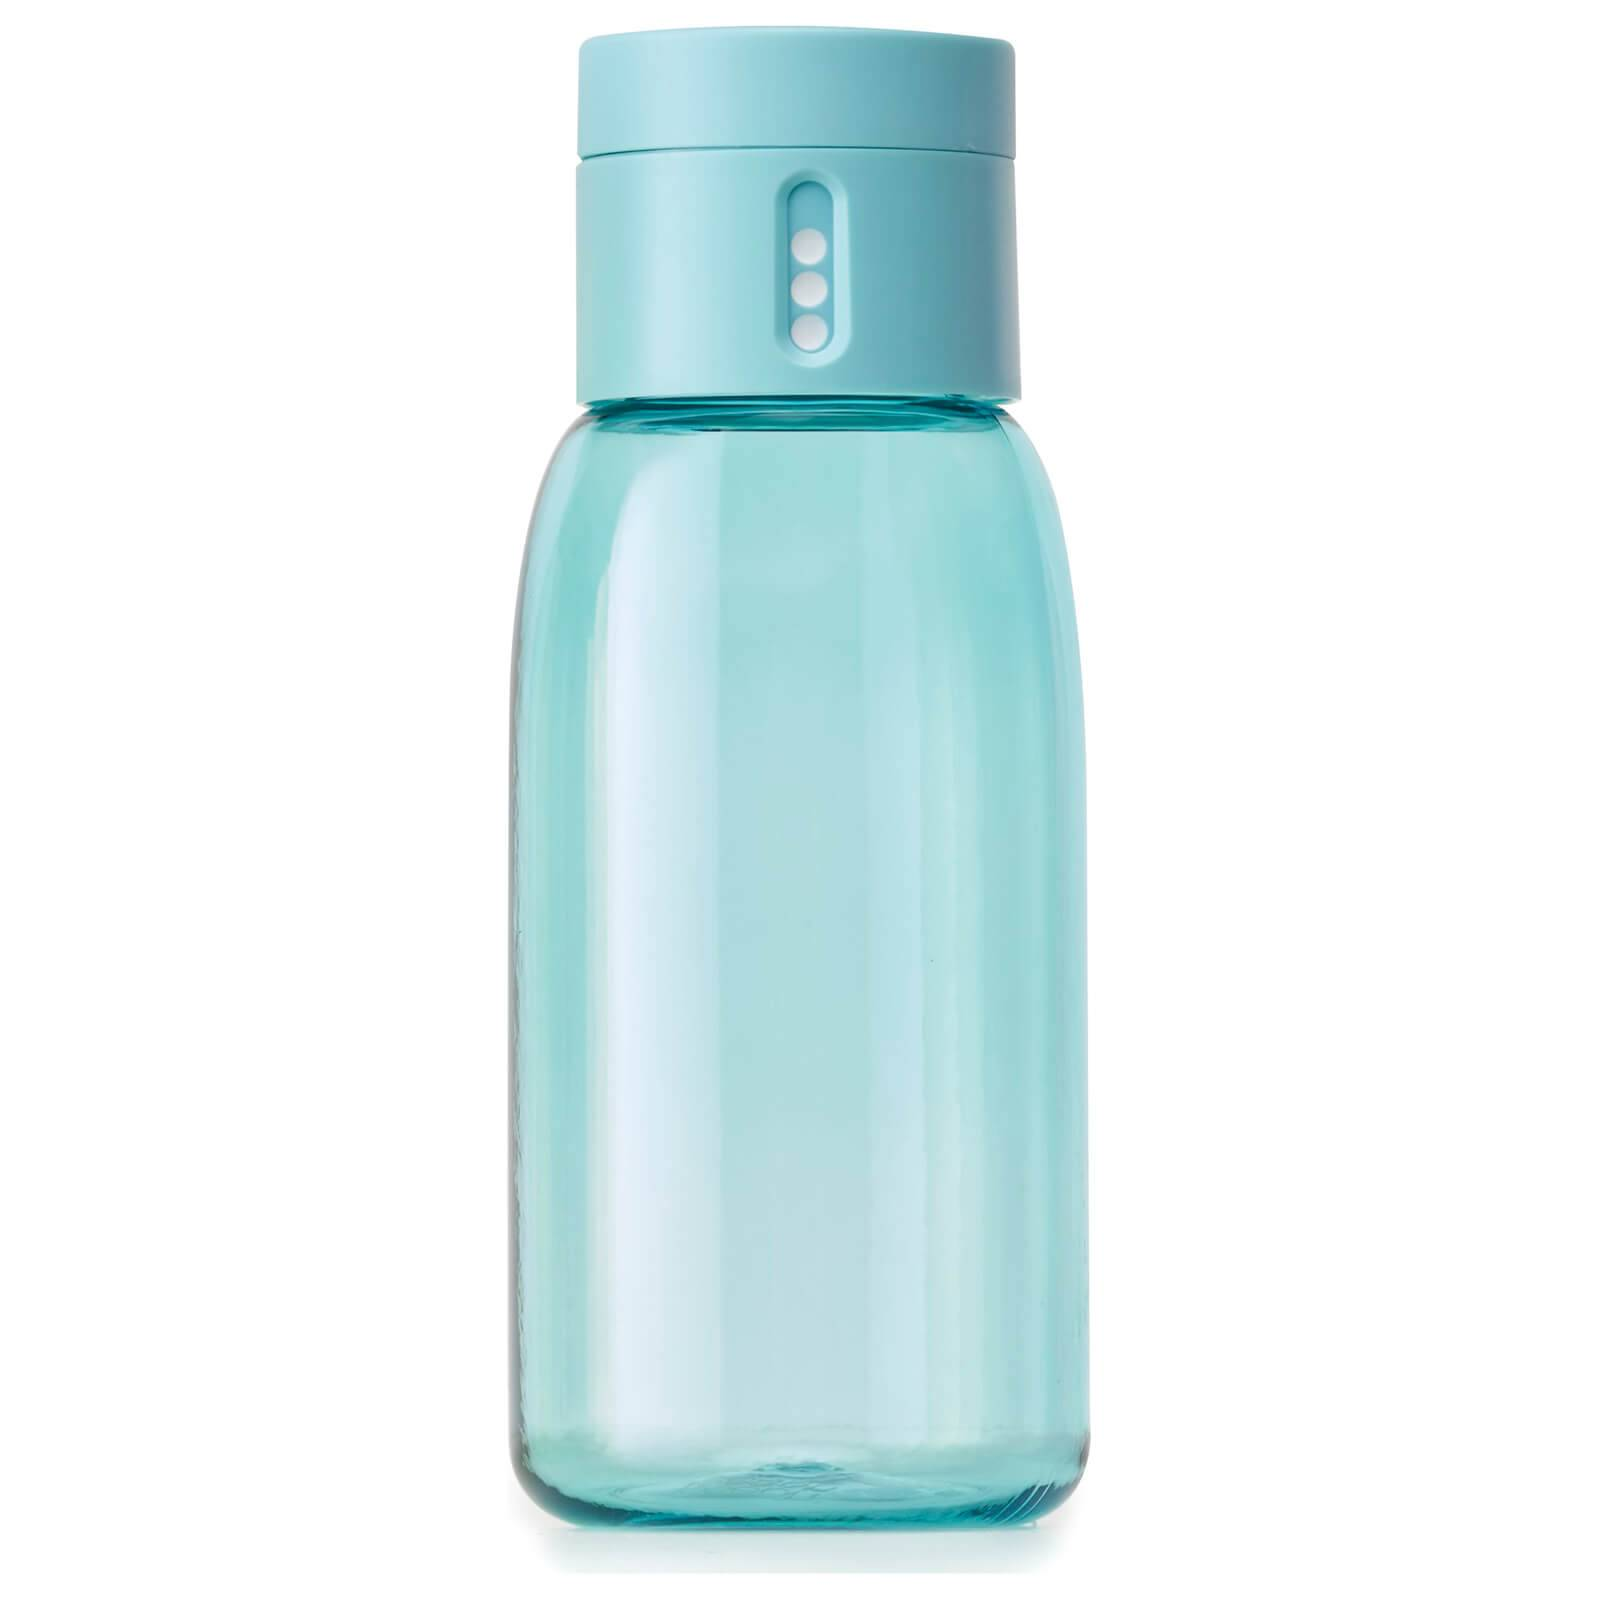 Joseph Joseph Dot Hydration-Tracking Water Bottle - Turquoise 400ml